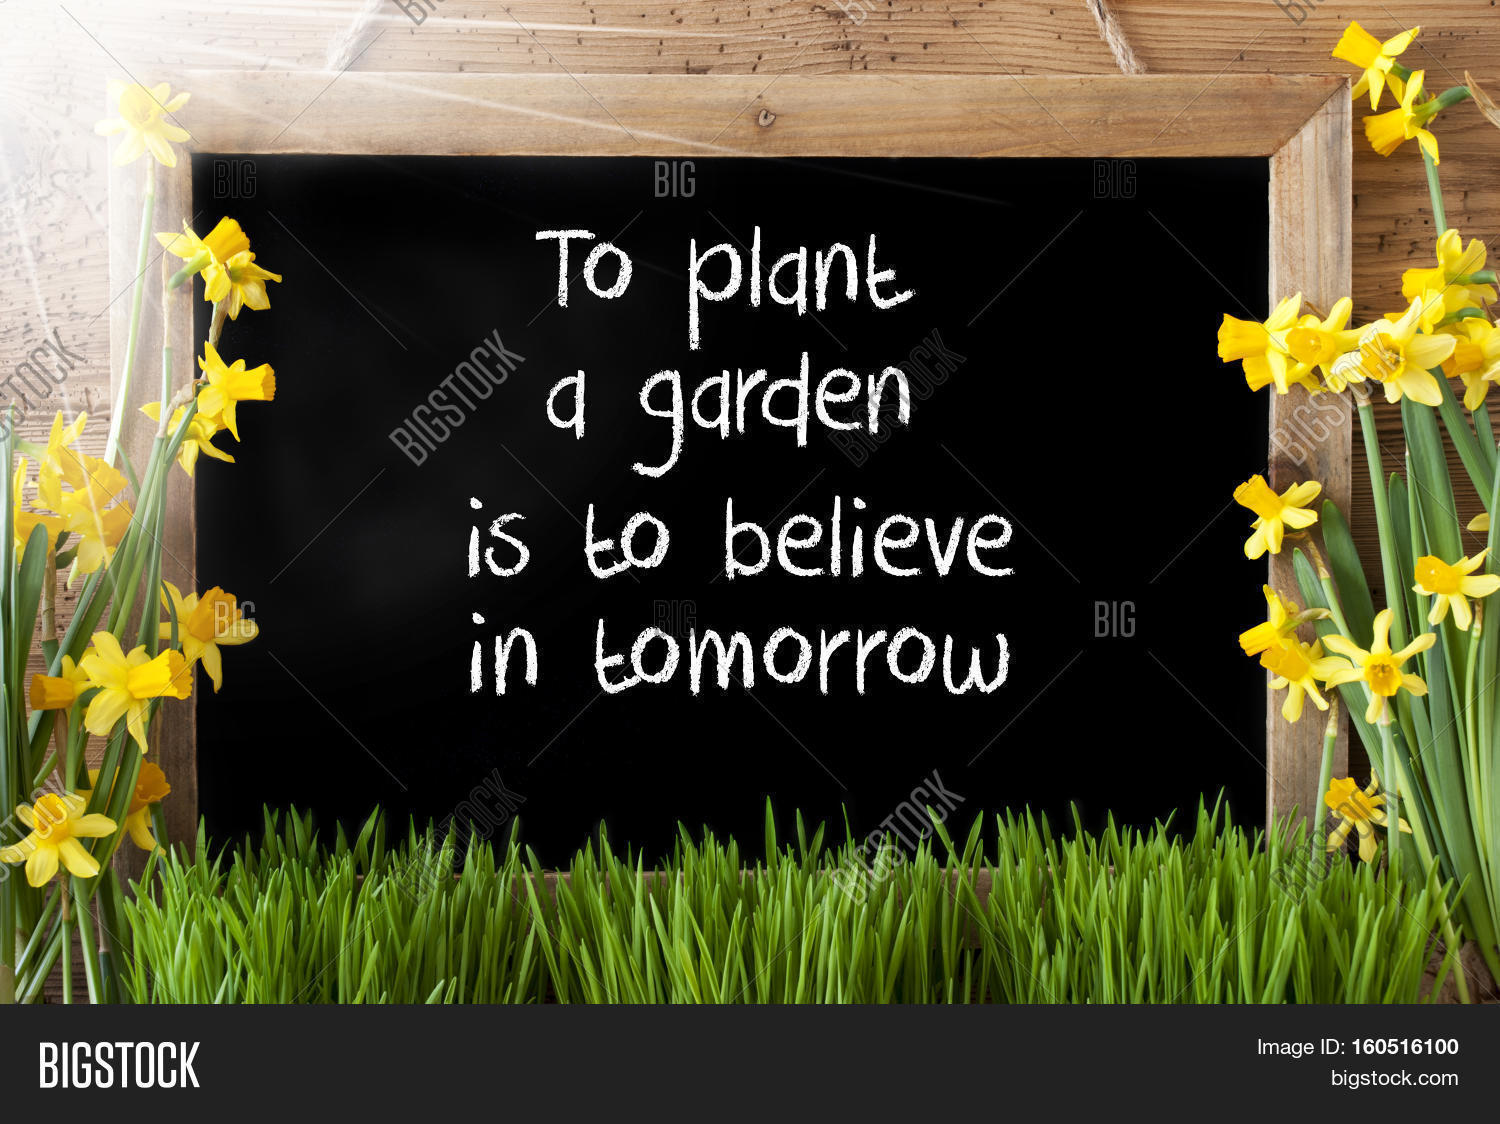 Blackboard With English Quote To Plant A Garden Is To Believe In Tomorrow.  Sunny Spring